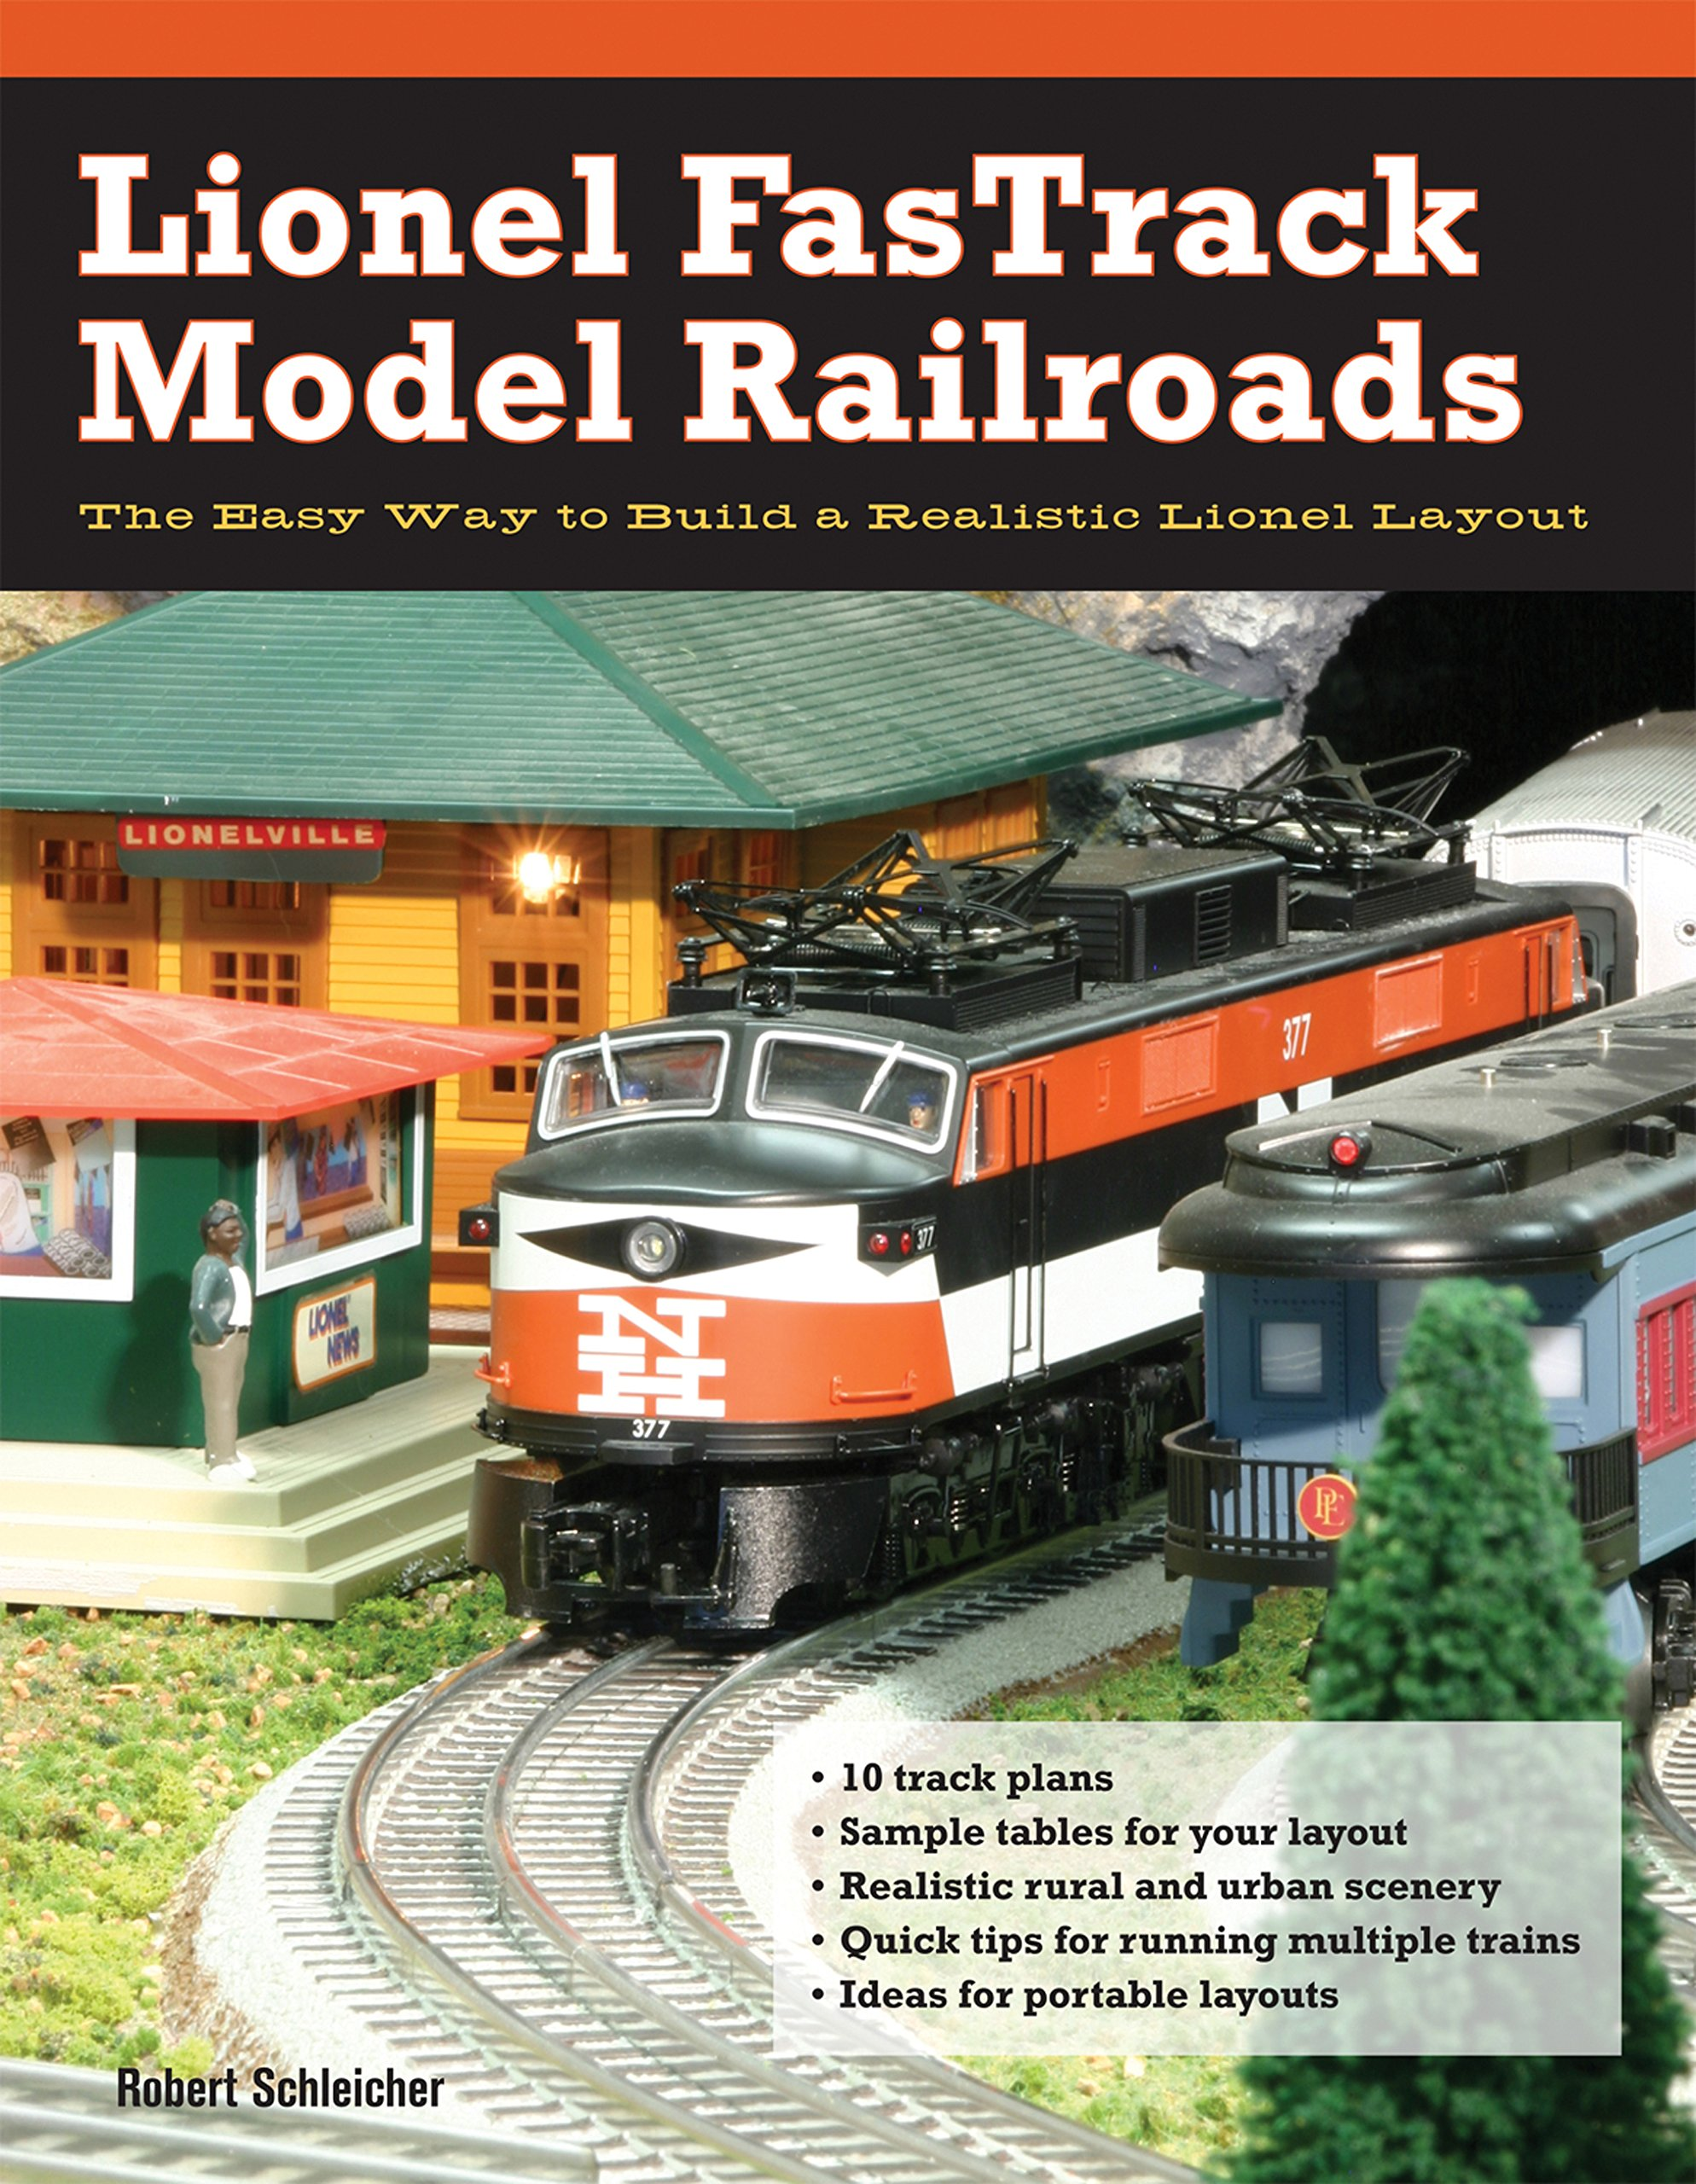 Lionel FasTrack Model Railroads: The Easy Way to Build a